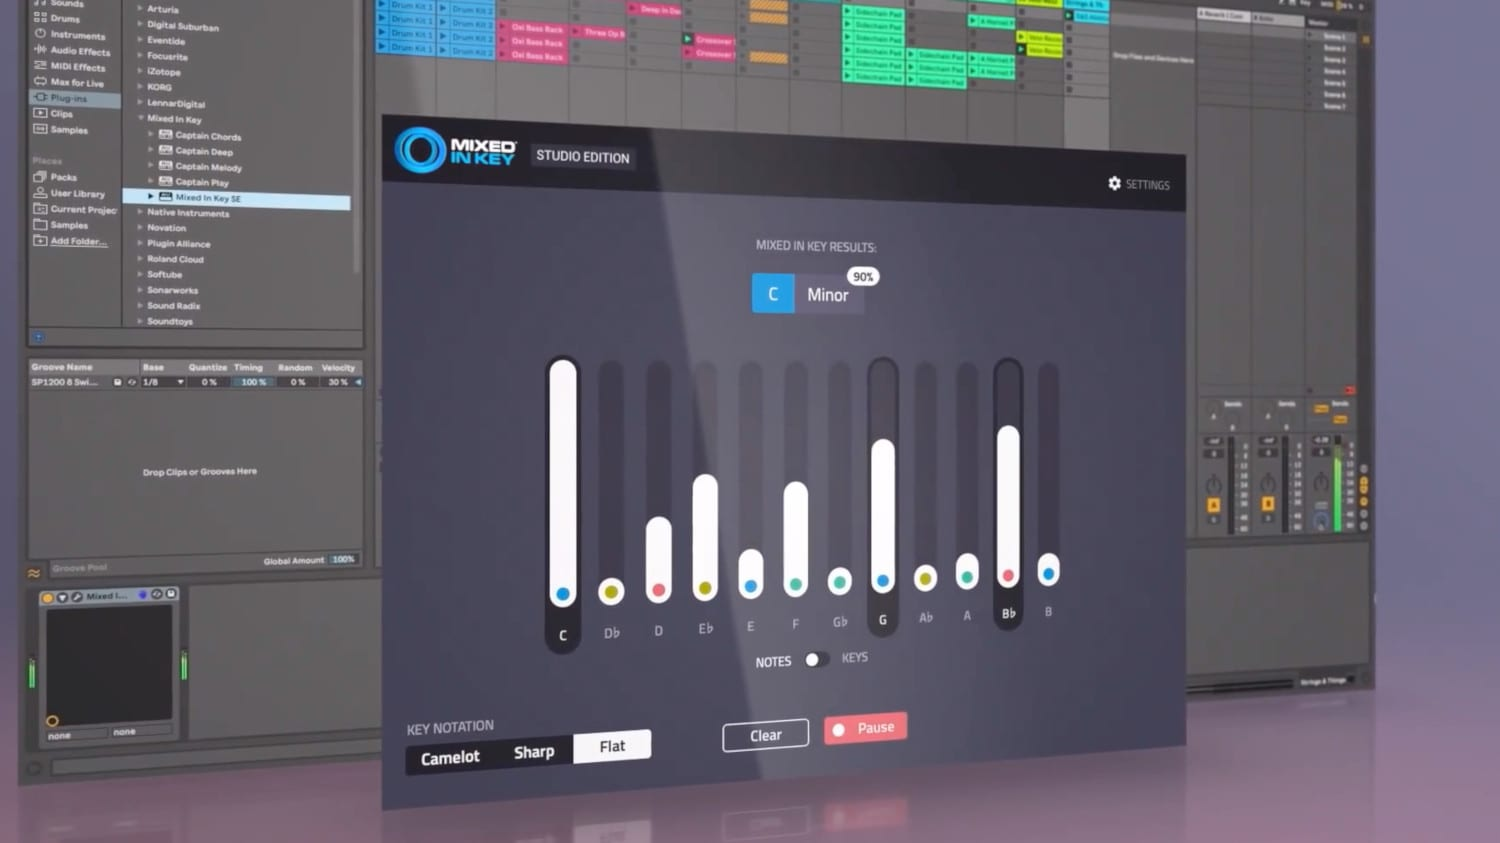 Mixed in Key Studio Edition Can Analyze a Session and Tell You it's Key